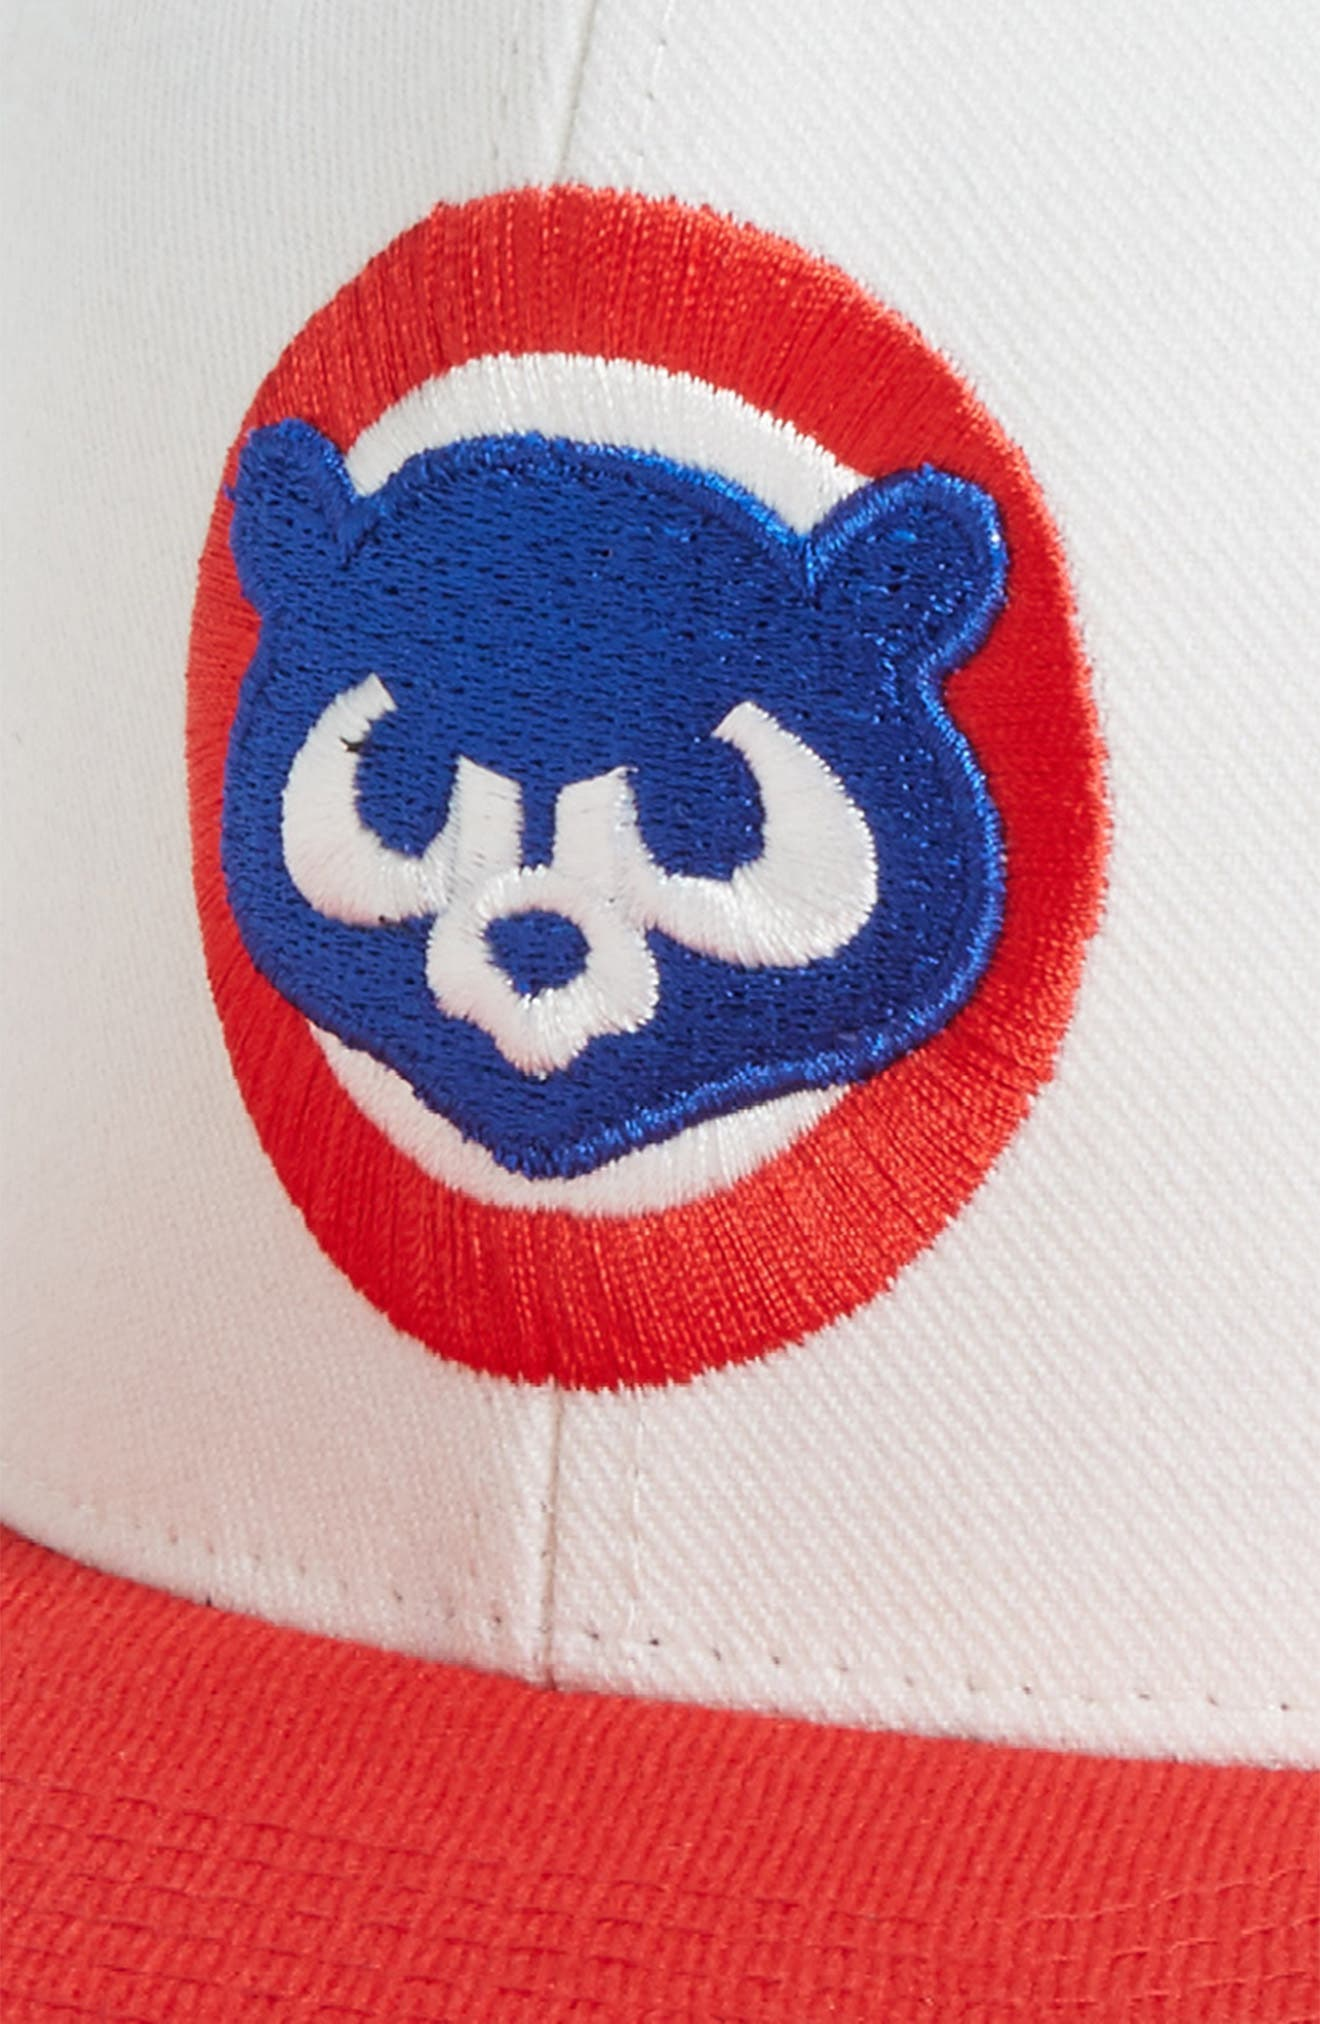 Alternate Image 3  - American Needle The Big Show MLB Snapback Baseball Cap